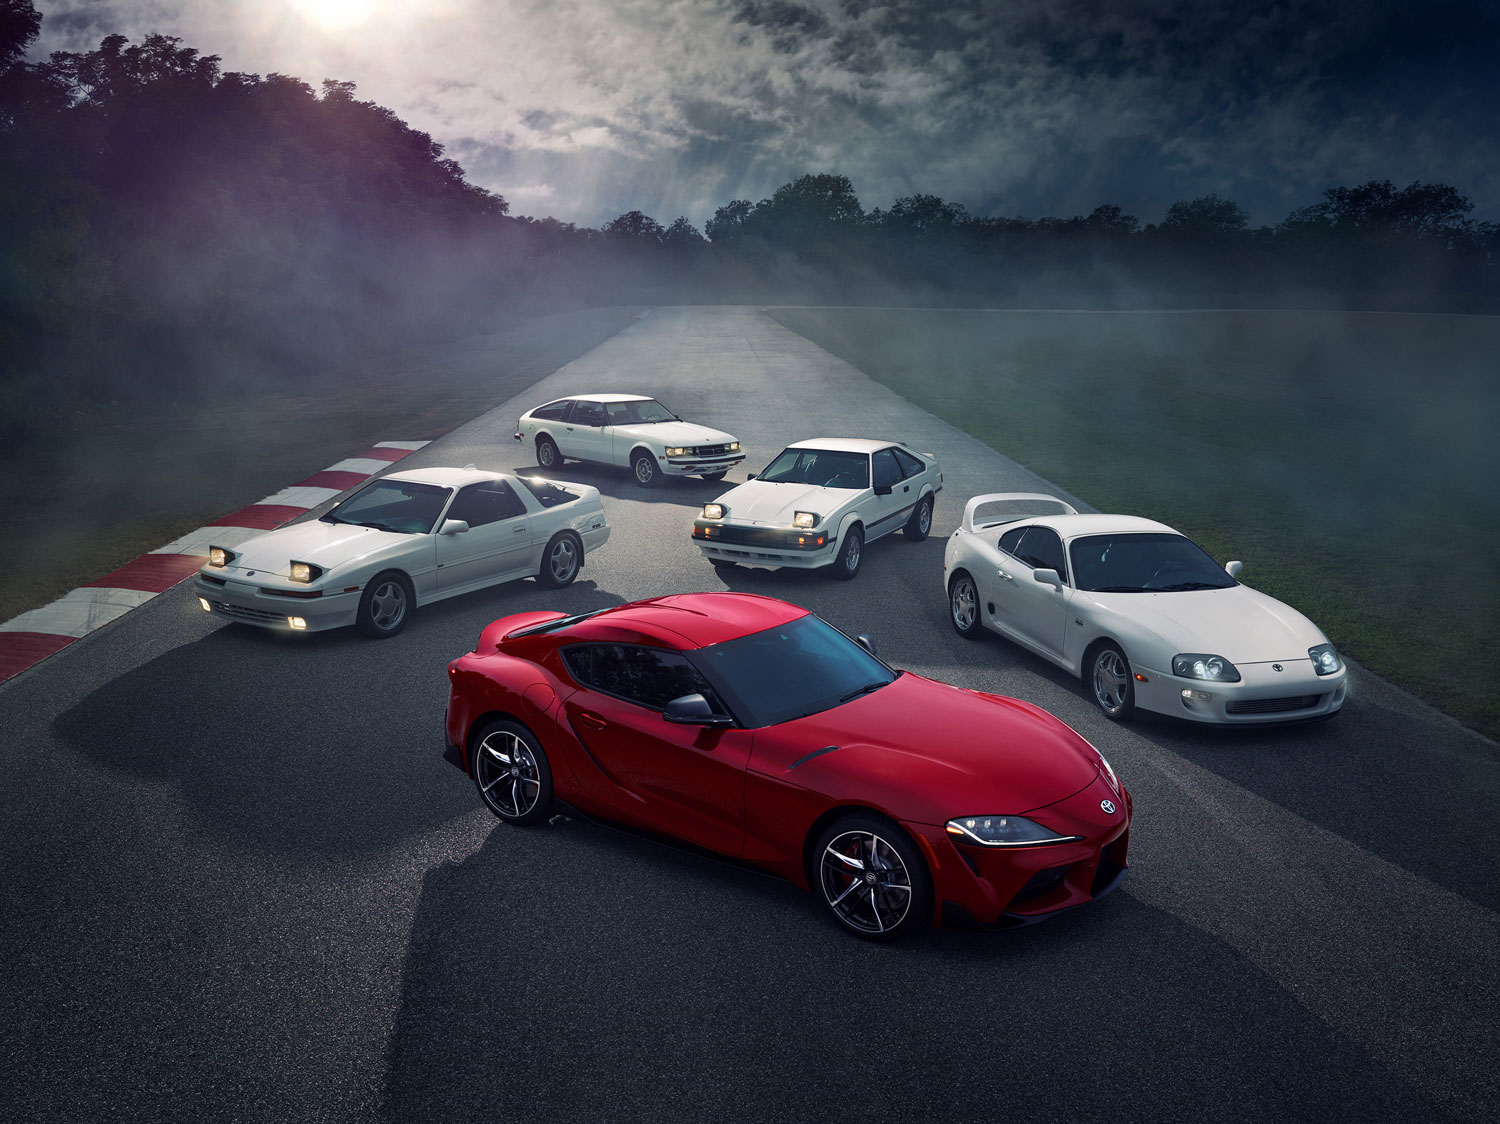 five generations of Toyota Supra